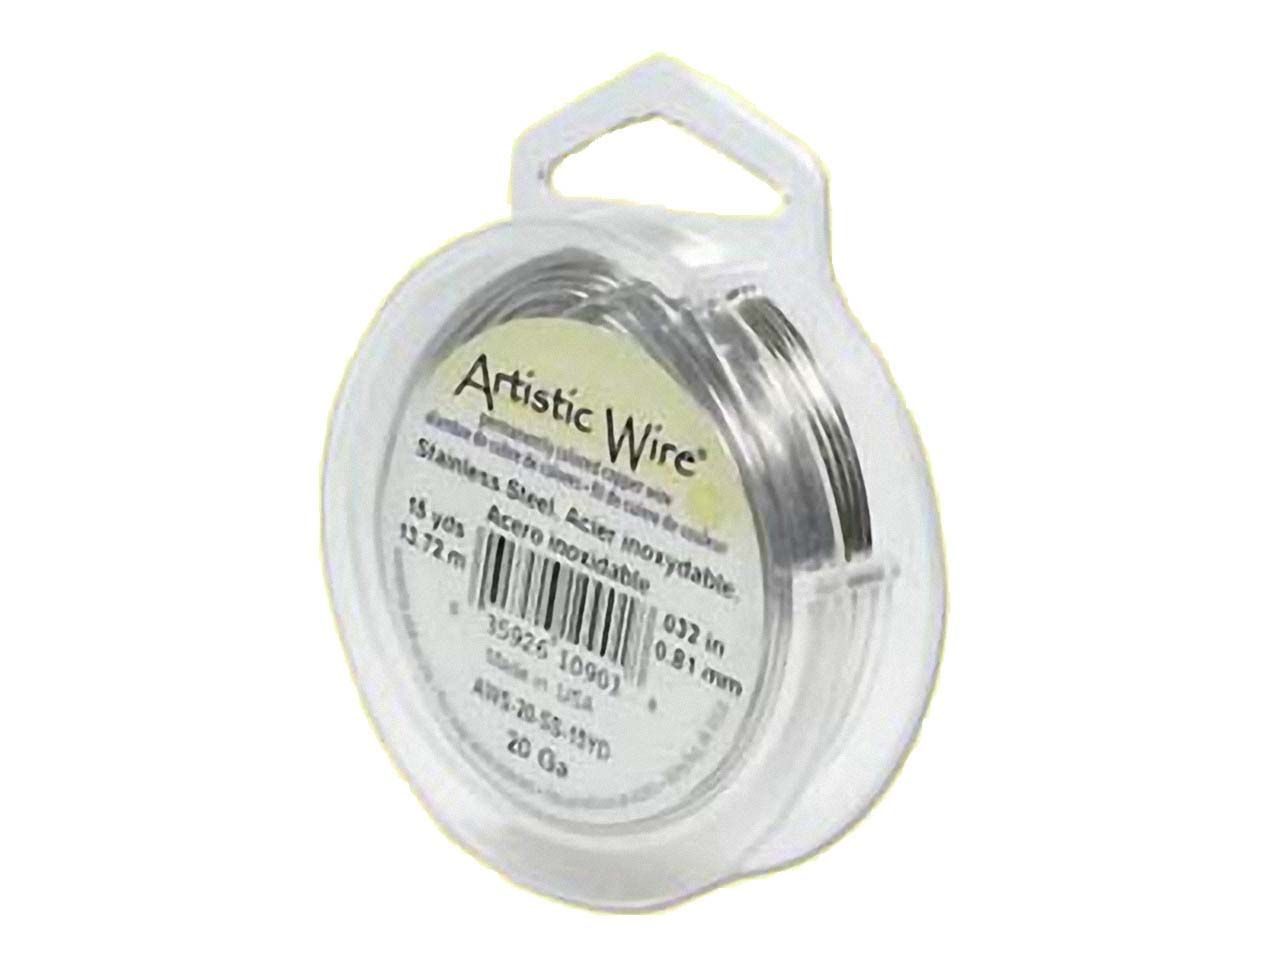 Stainless Steel Craft Wire 0.5mm